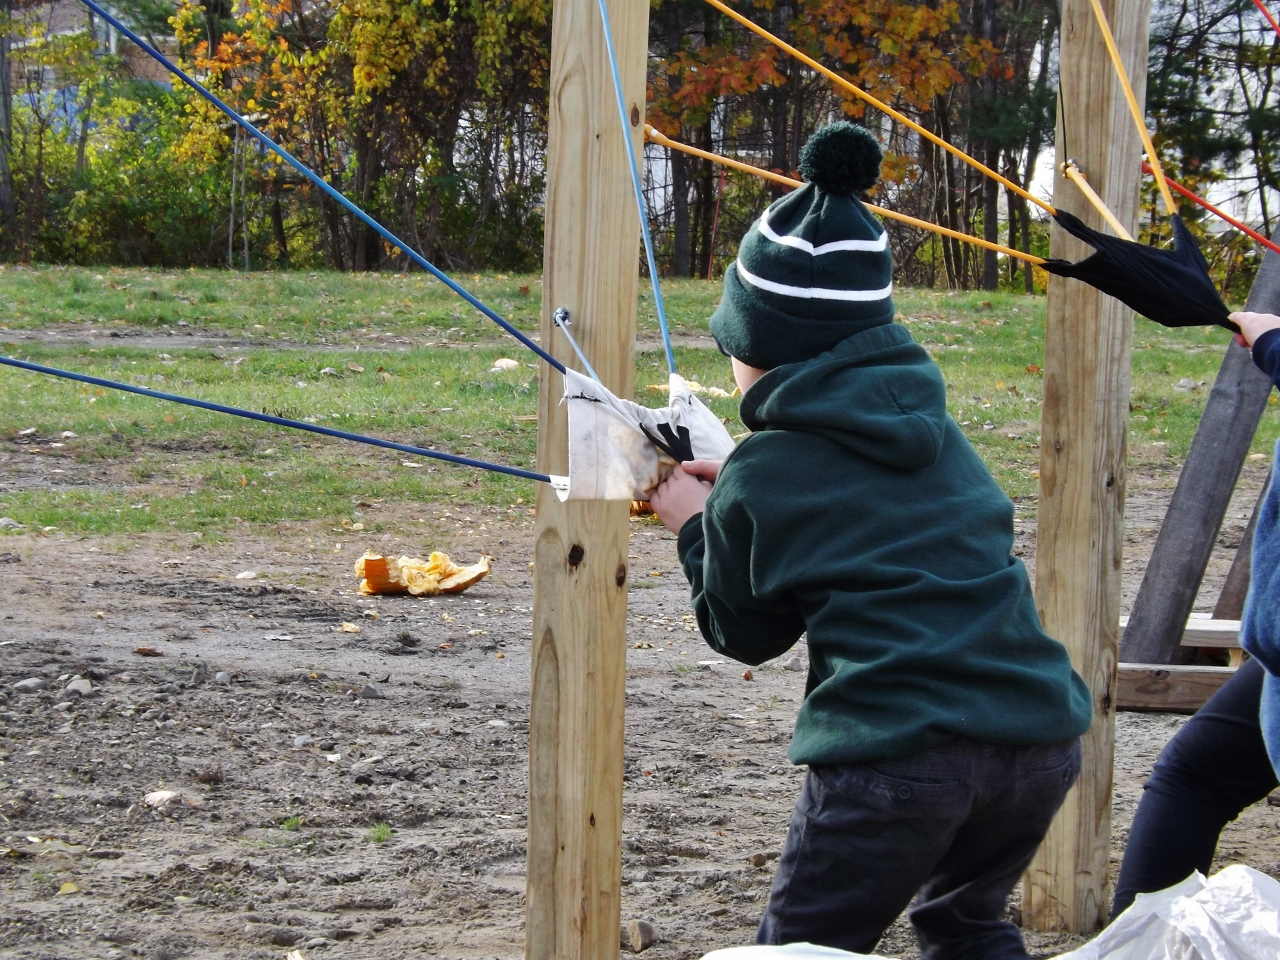 A boy aims with an apple slingshot.